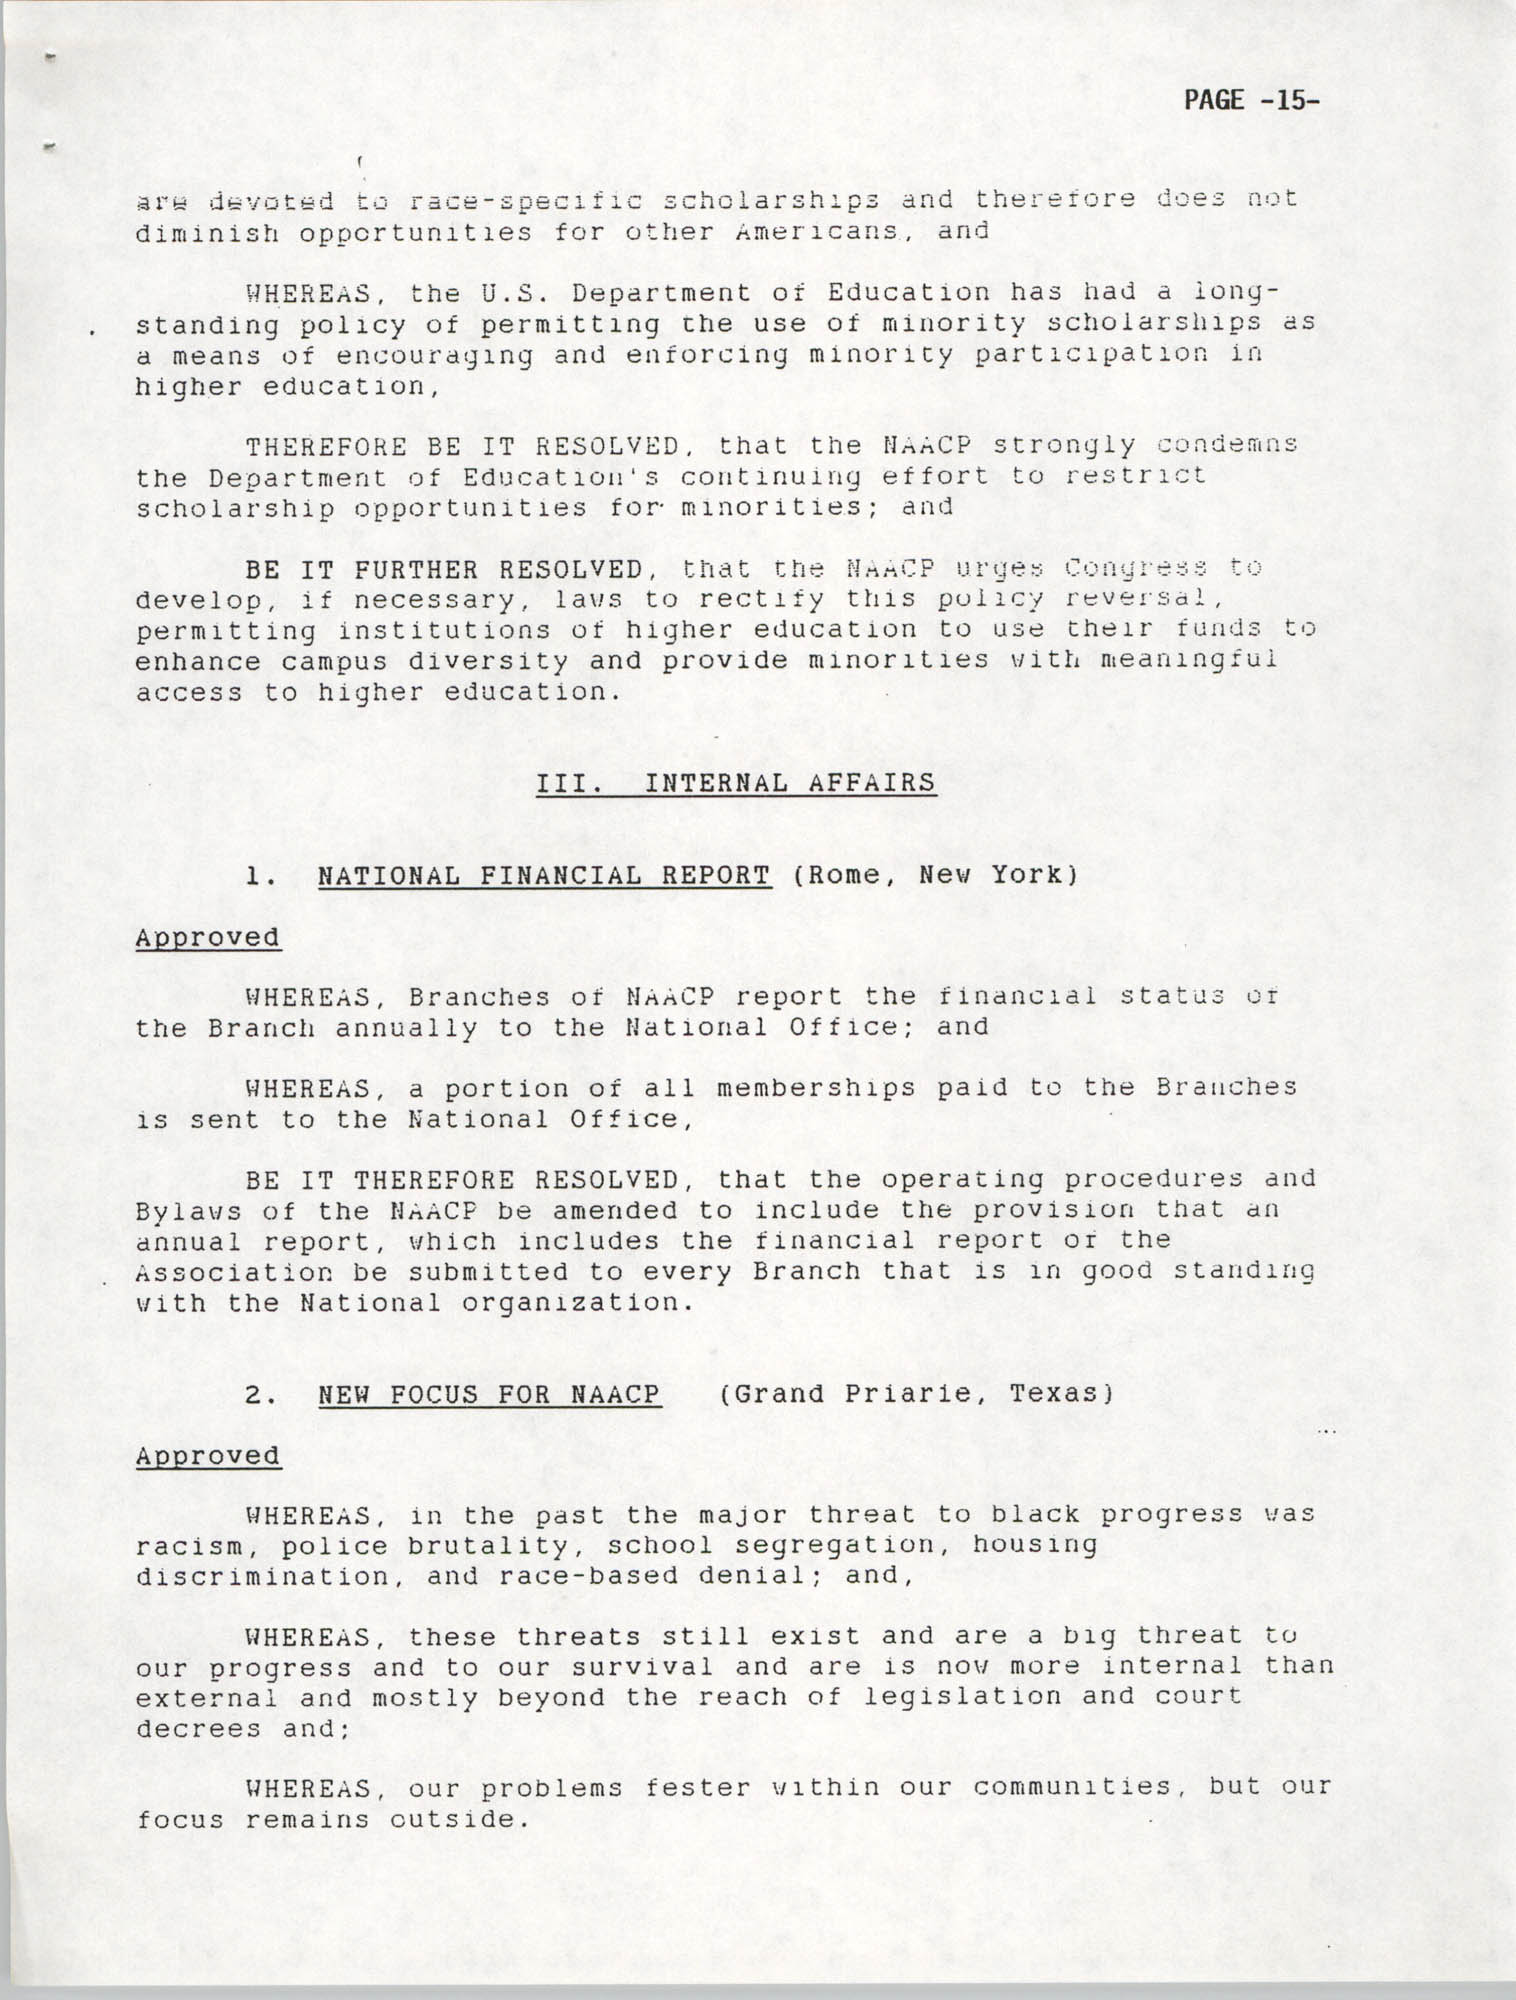 Resolutions Submitted Under Article X, Section 2 of the Constitution of the NAACP, 1992, Page 15